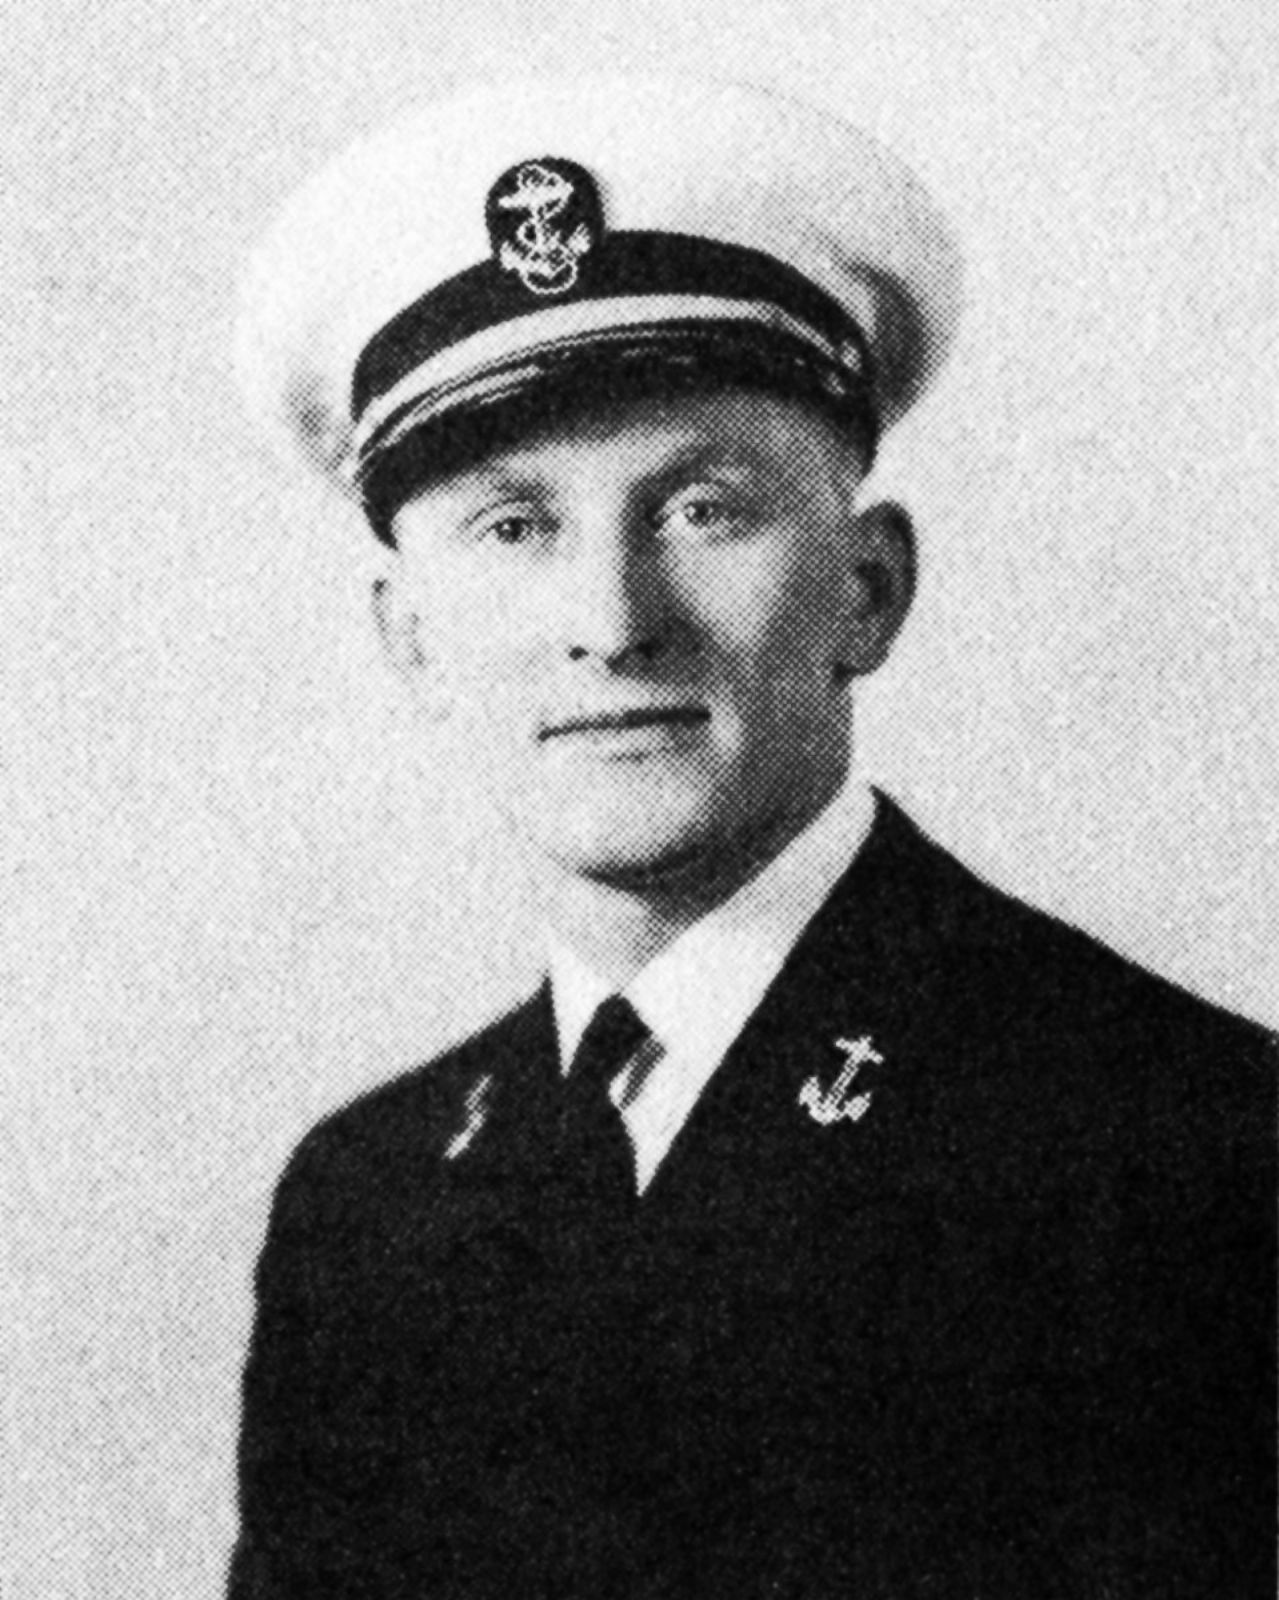 Young Kirk Douglas in his military uniform